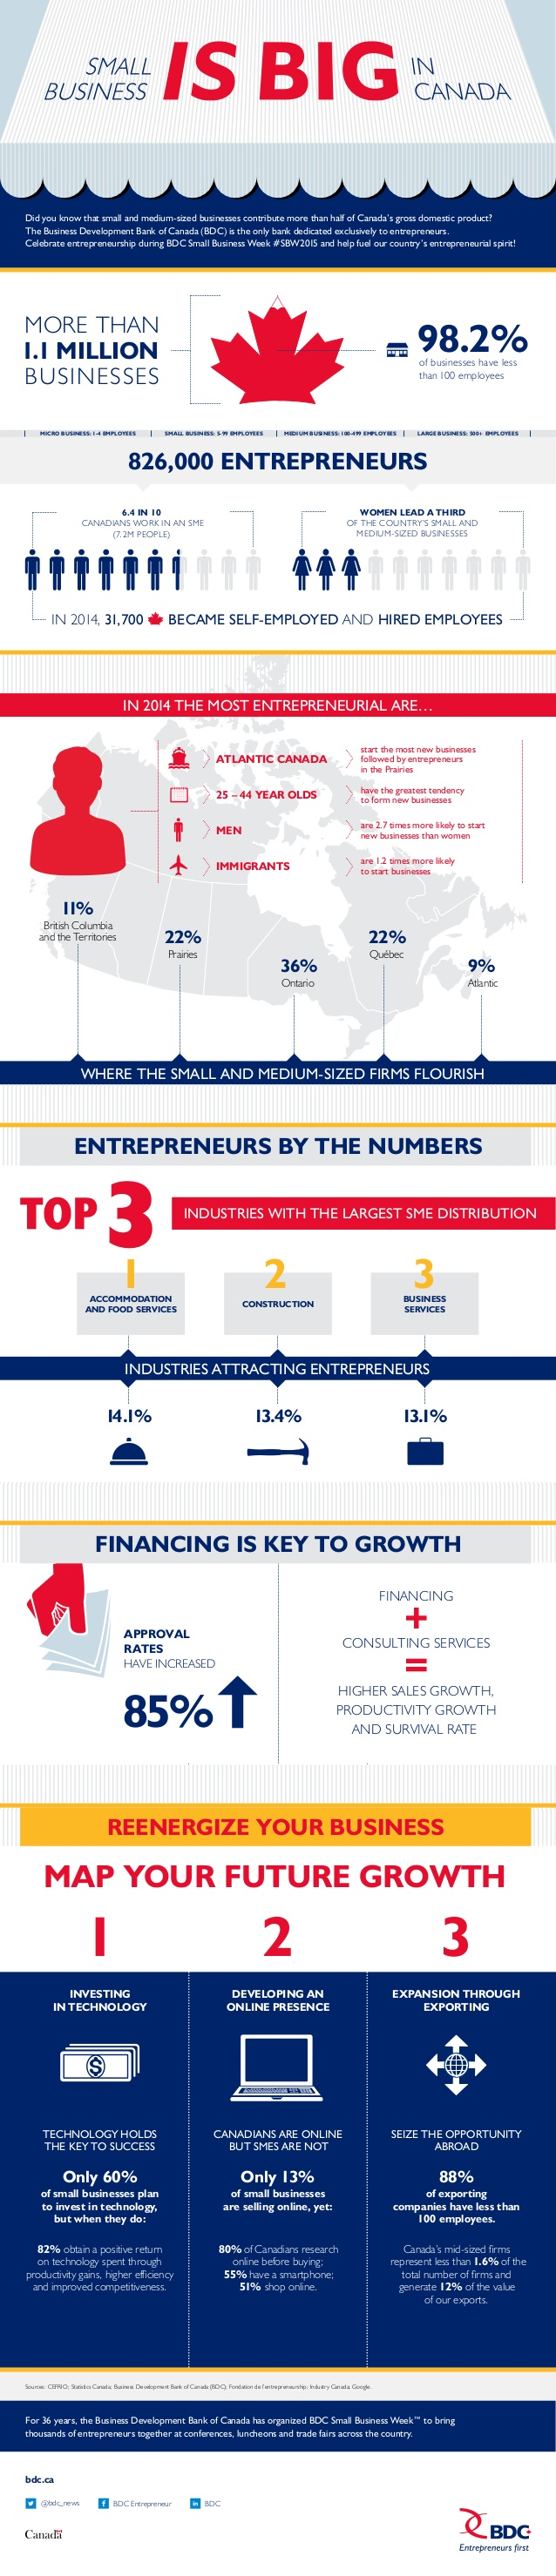 Small business infographic from bdc.ca